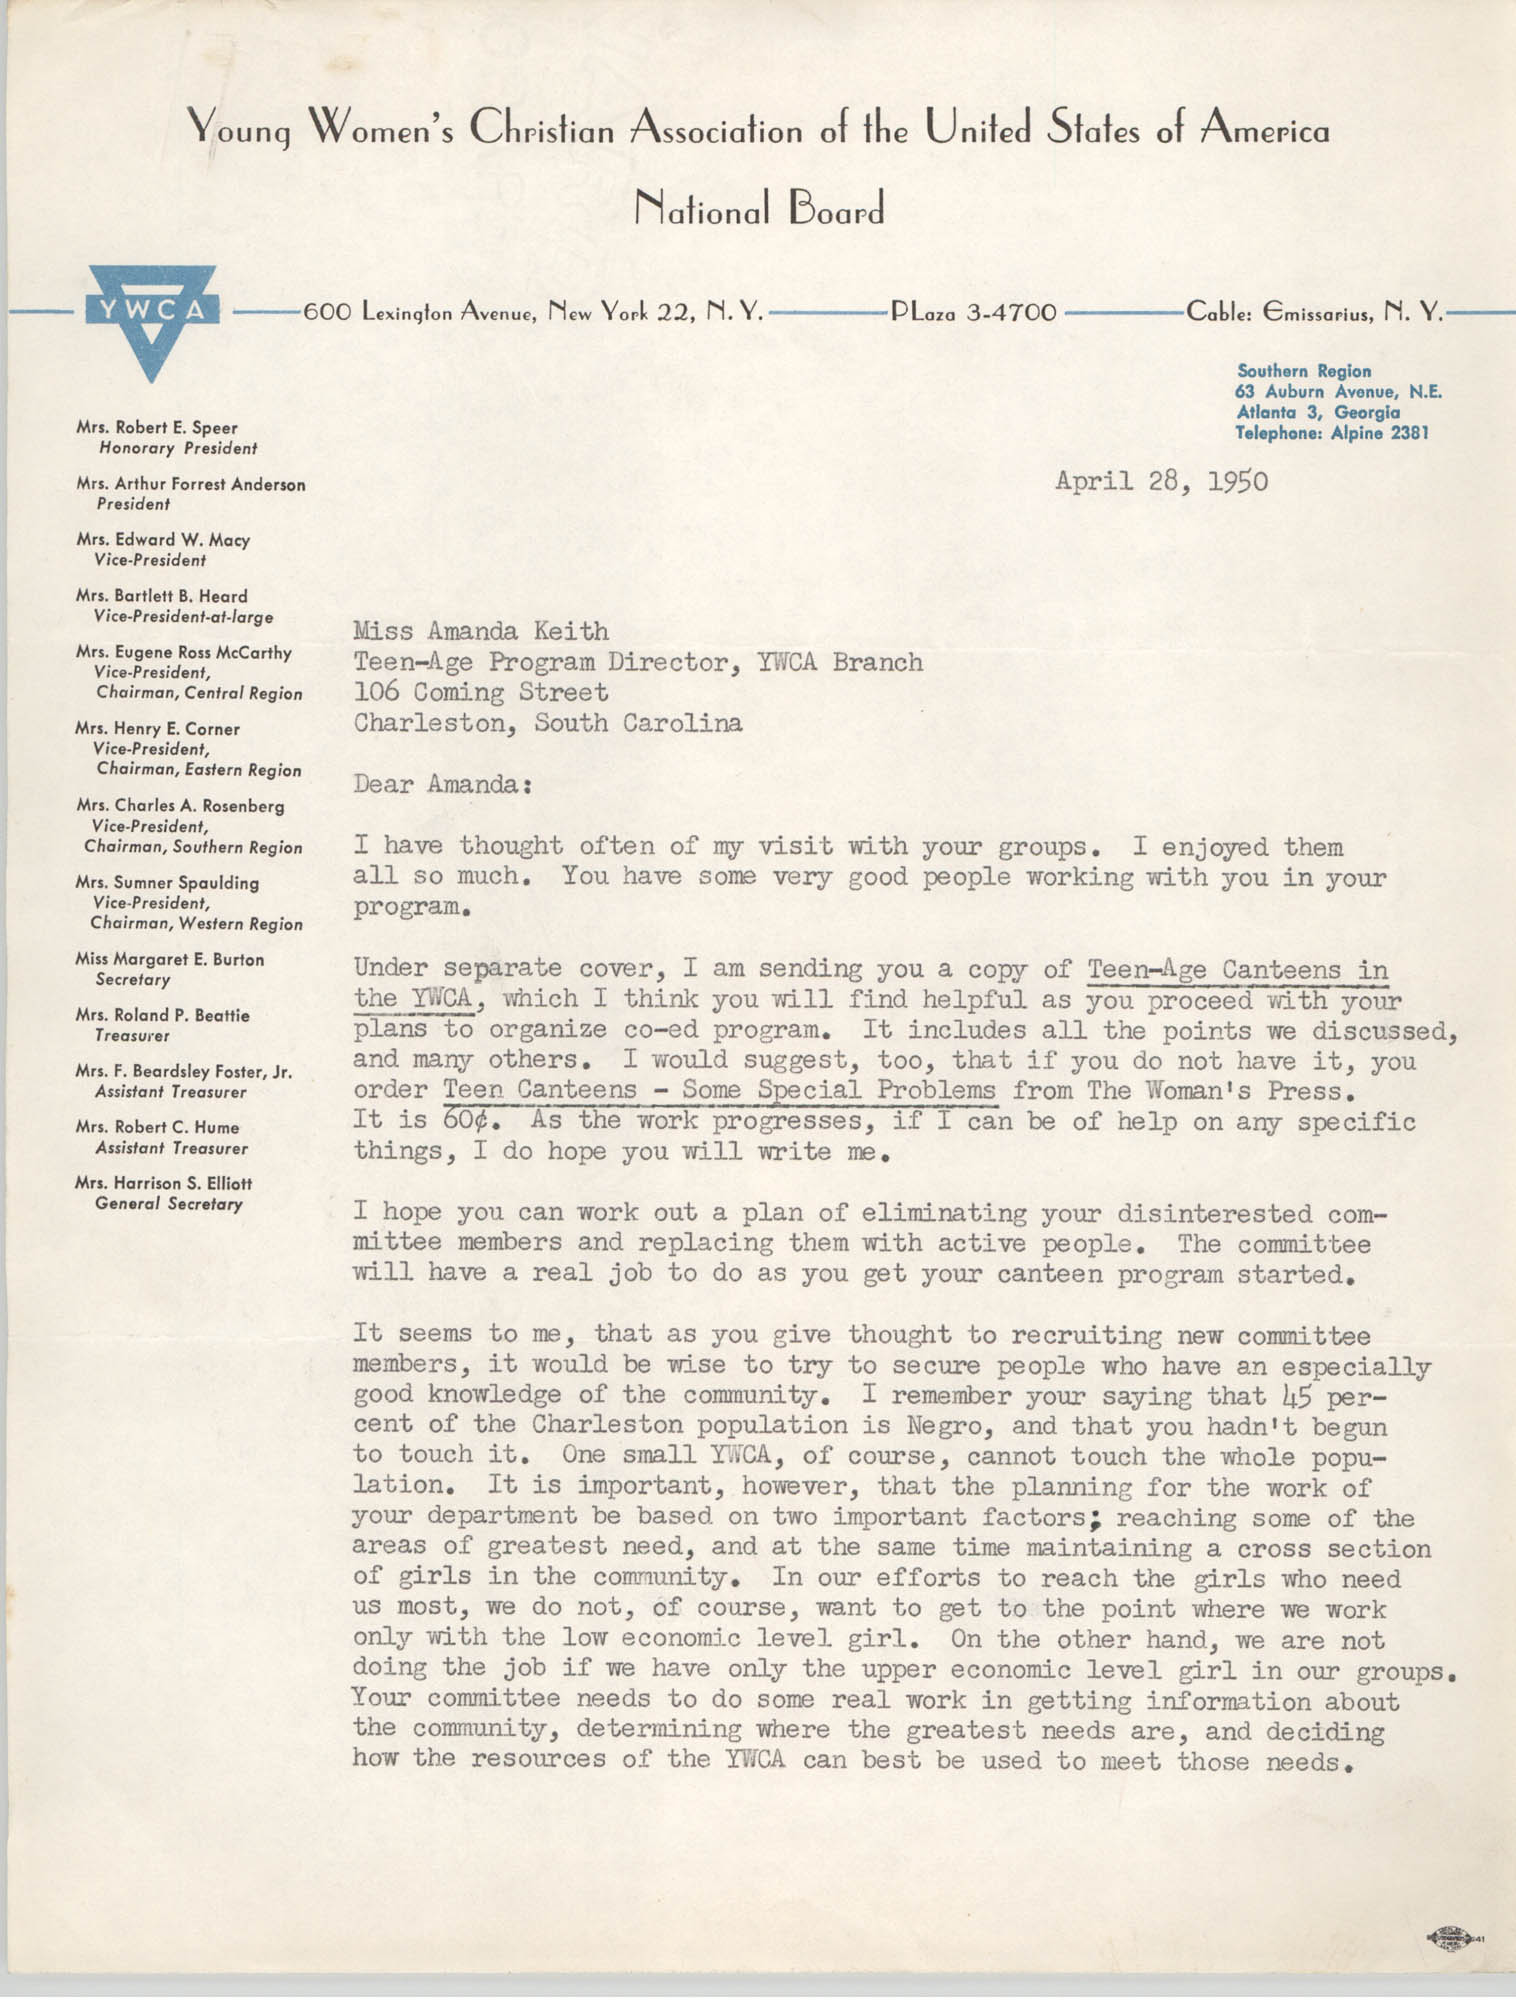 Letter from Kathaleen Carpenter to Amanda Keith, April 28, 1950